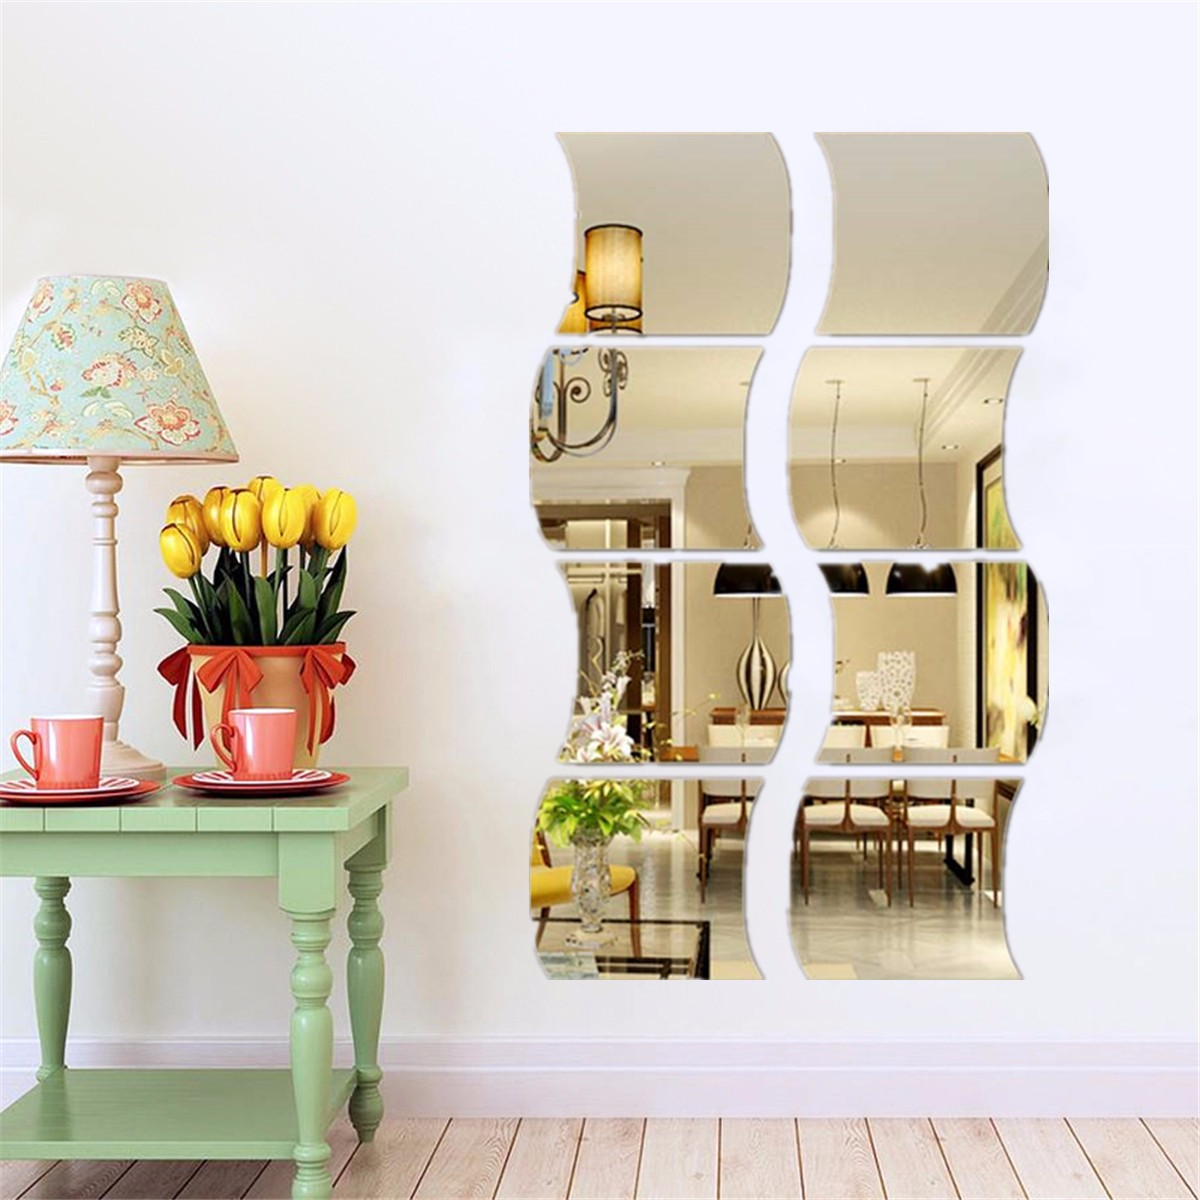 18 PCS 3D Acrylic Modern Mirror Wall Stickers Vinyl Removable Home View Window Decal Art Decor Mural For Home Living Room Decoration